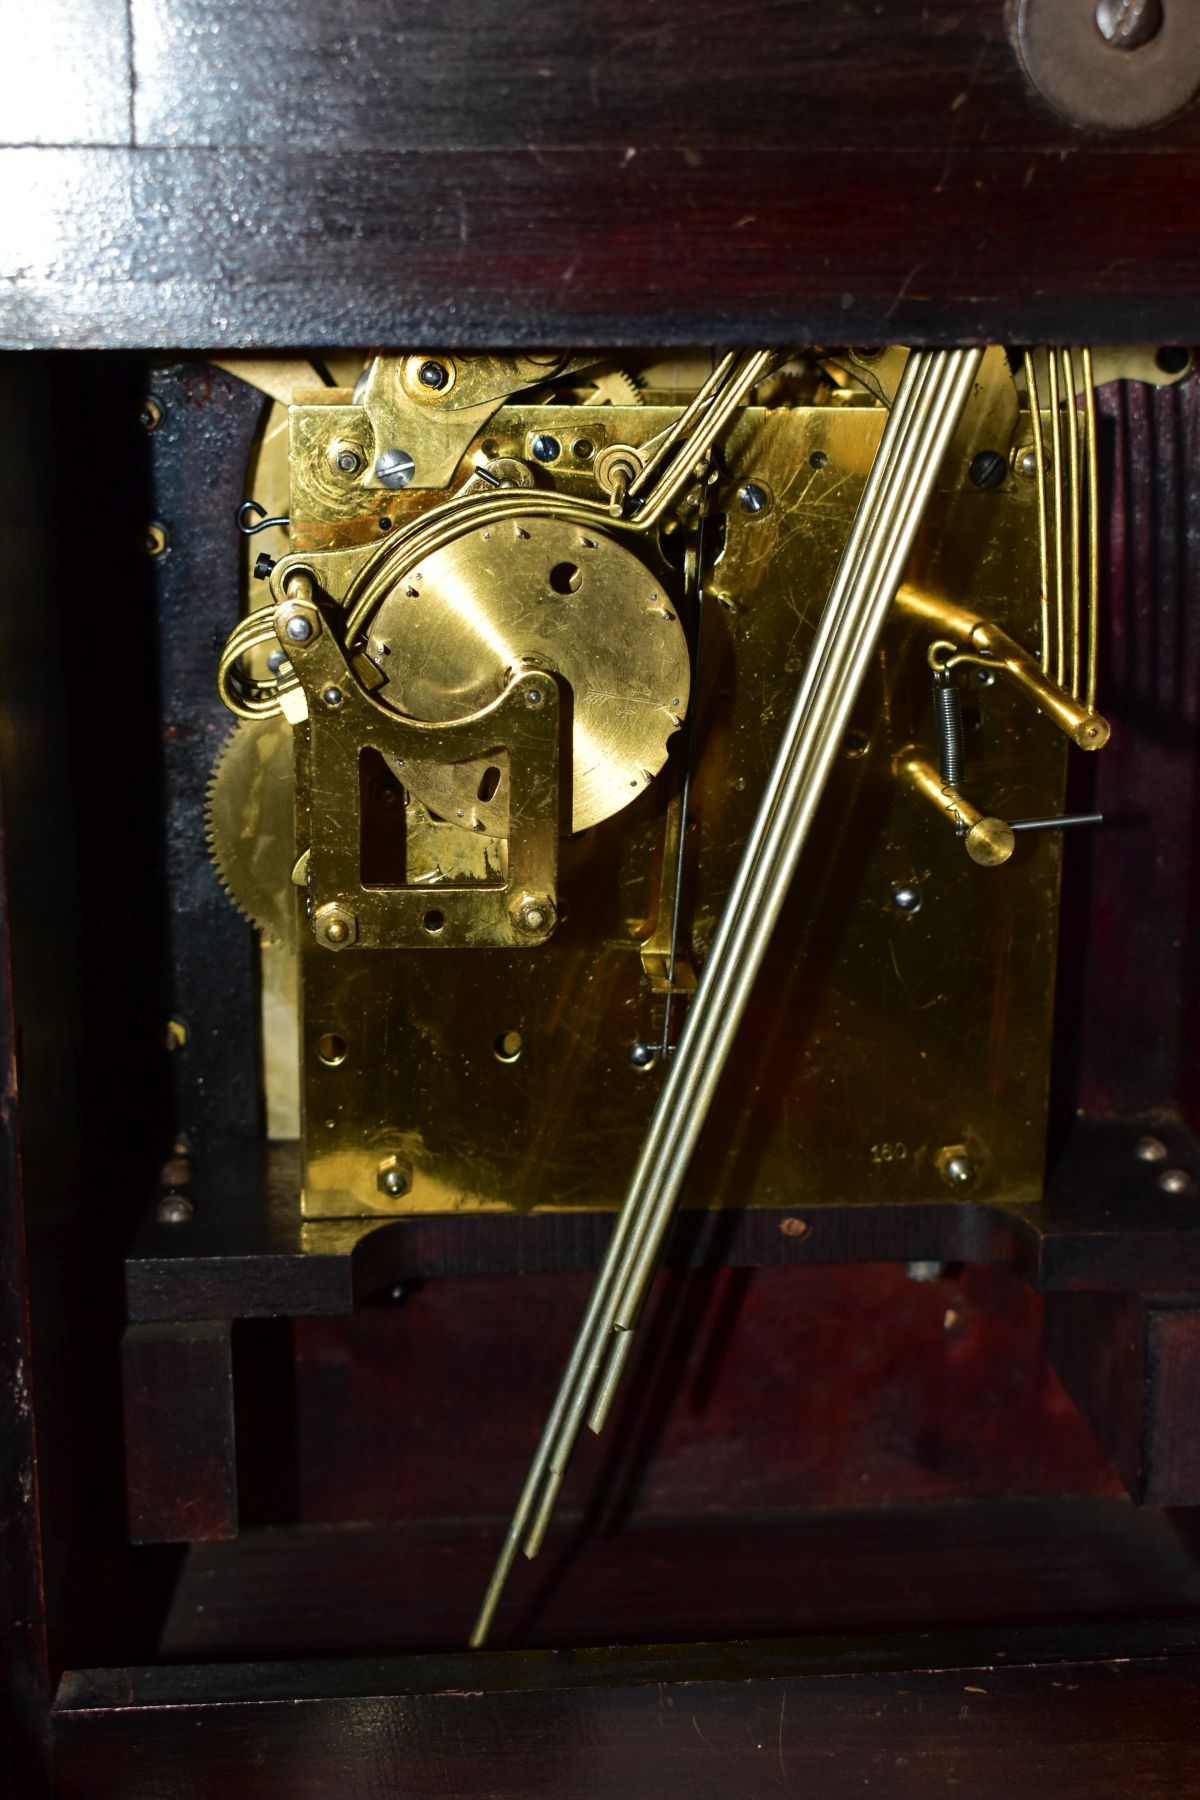 AN EARLY 2OTH CENTURY MAHOGANY STAINED GEORGE III STYLE BRACKET CLOCK, silvered dial with Arabic - Image 4 of 5